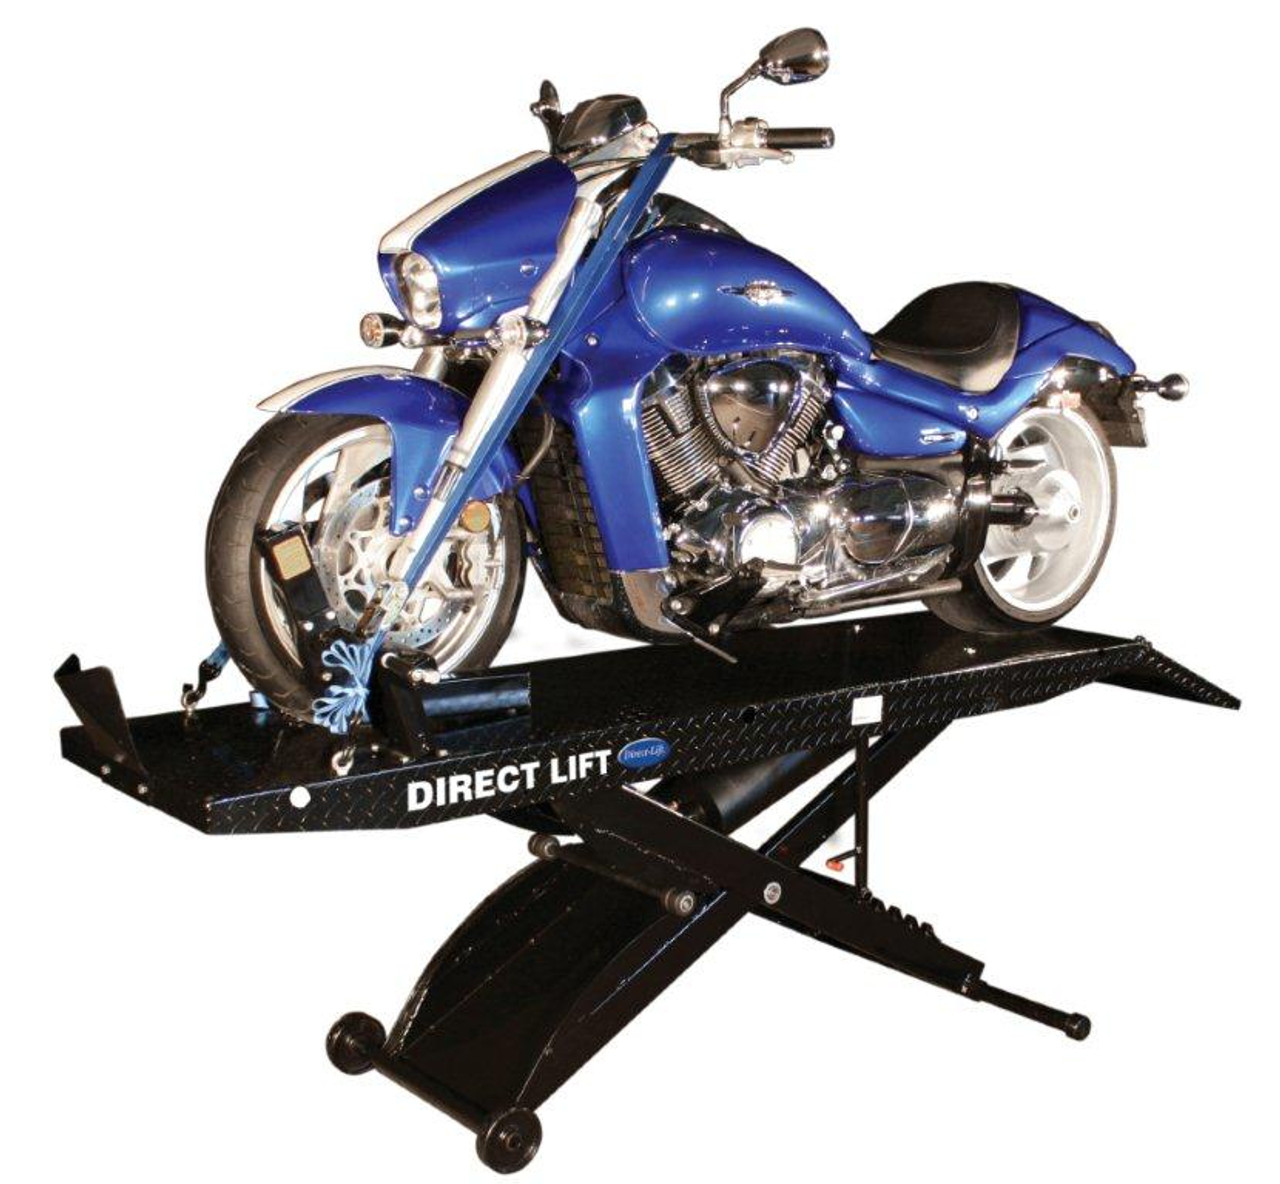 Direct-Lift® Pro-Cycle Droptail Motorcycle Lift